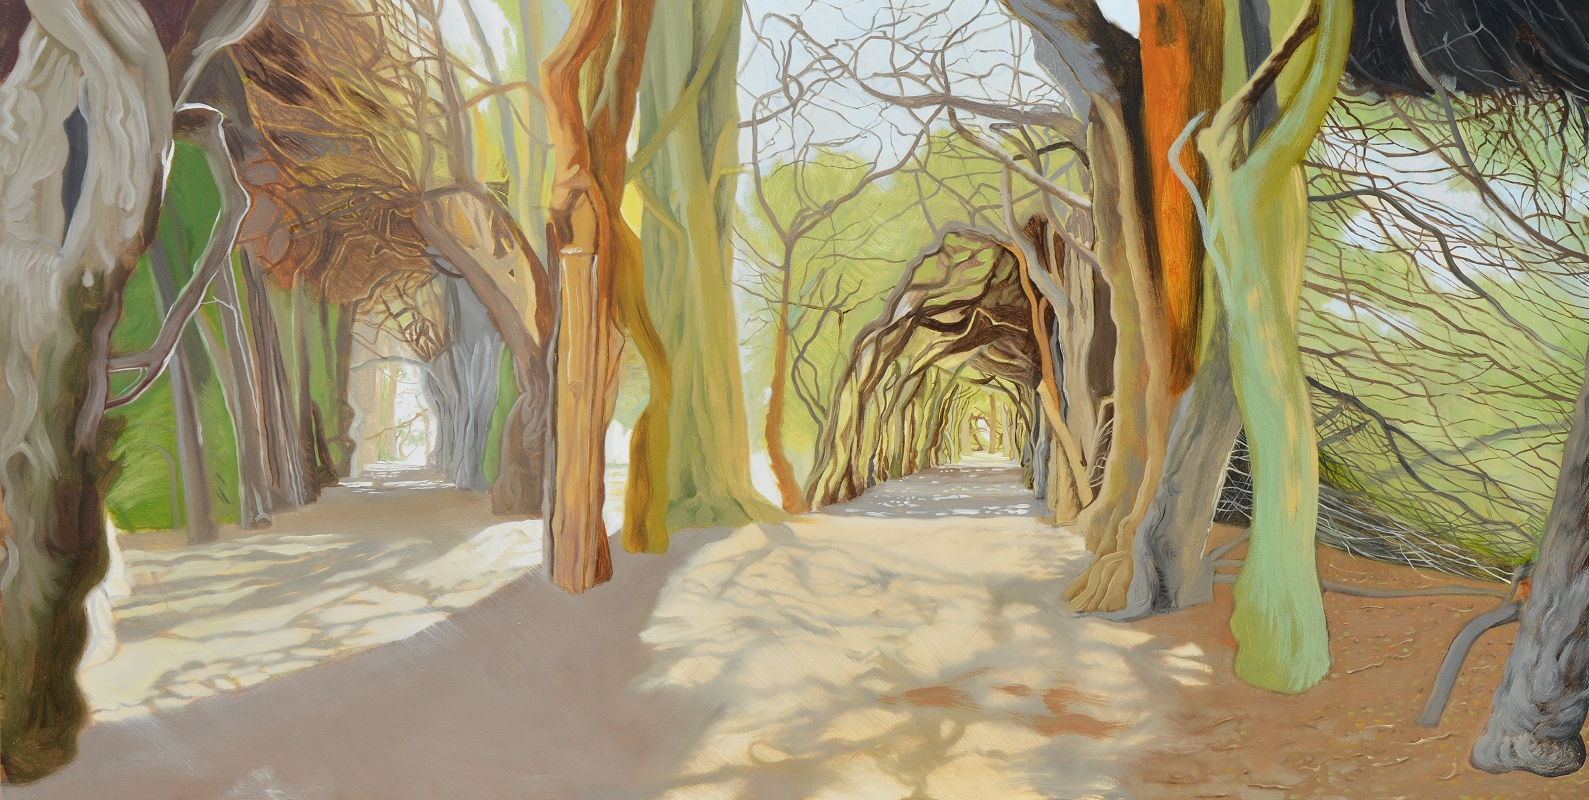 The Yew Walk Gormanston Ireland artwork by Anthony Christian - art listed for sale on Artplode